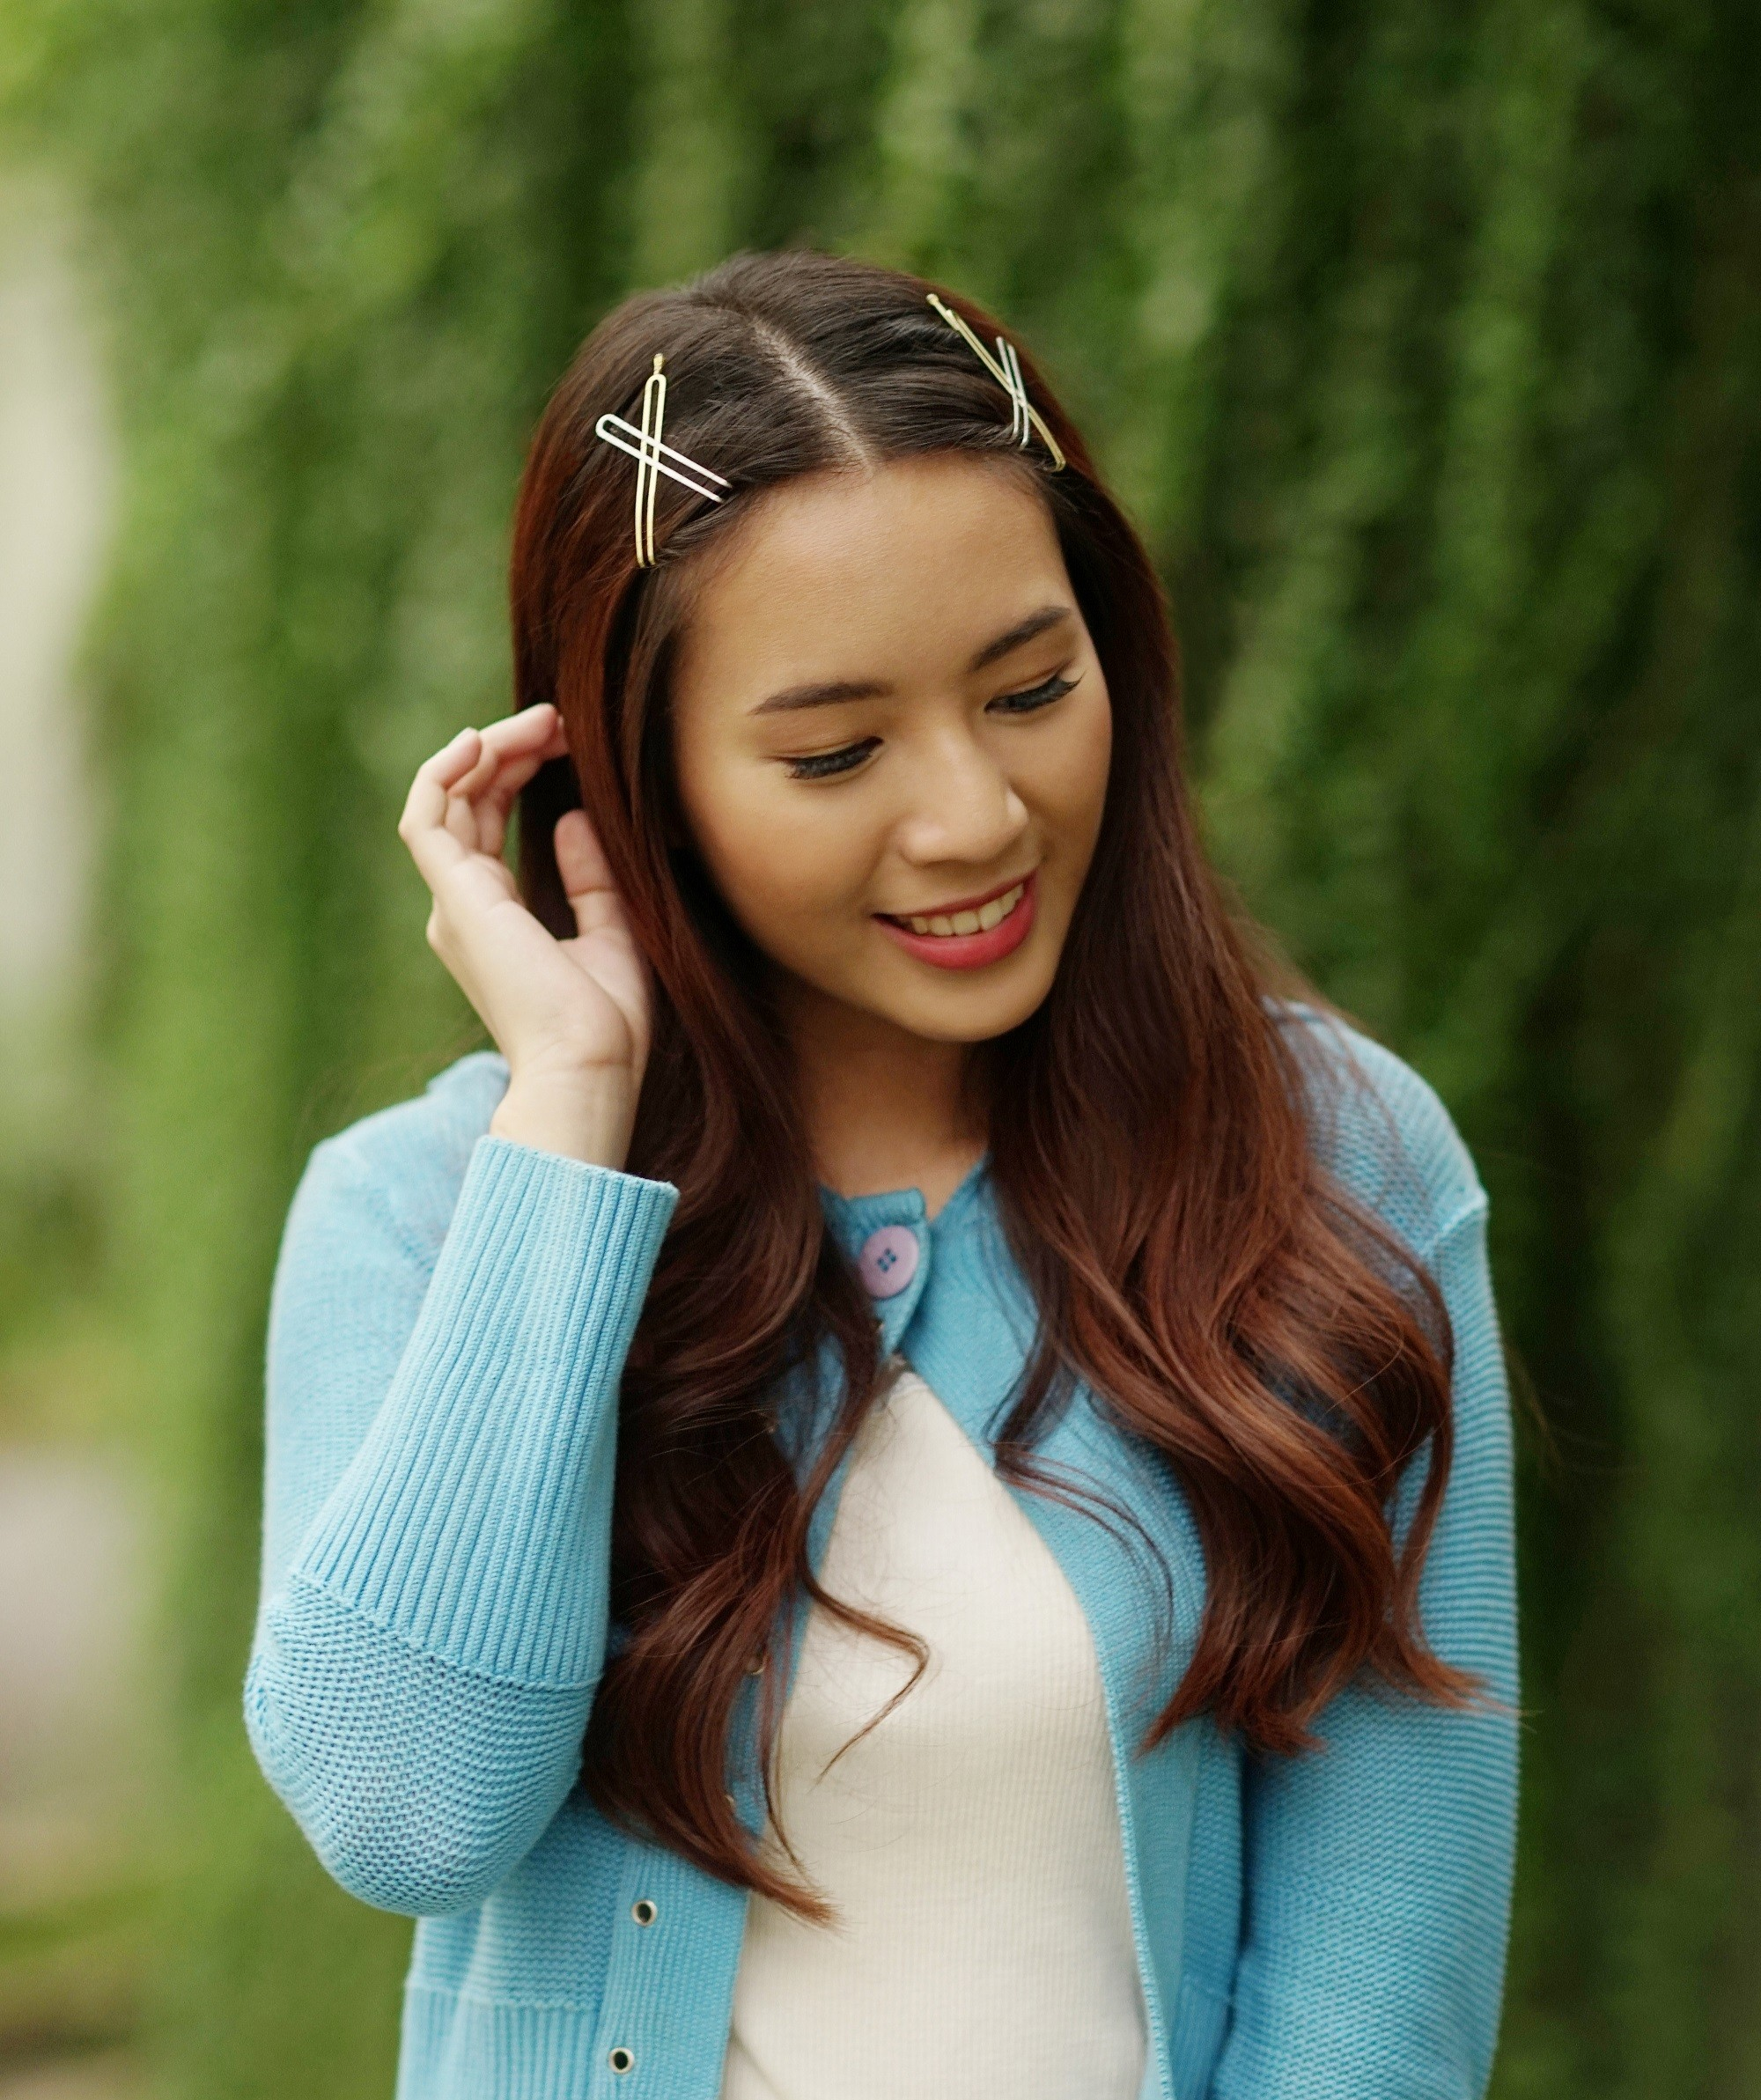 Hair Clip Trend 2019: Hottest Hair Trends To Try In 2019